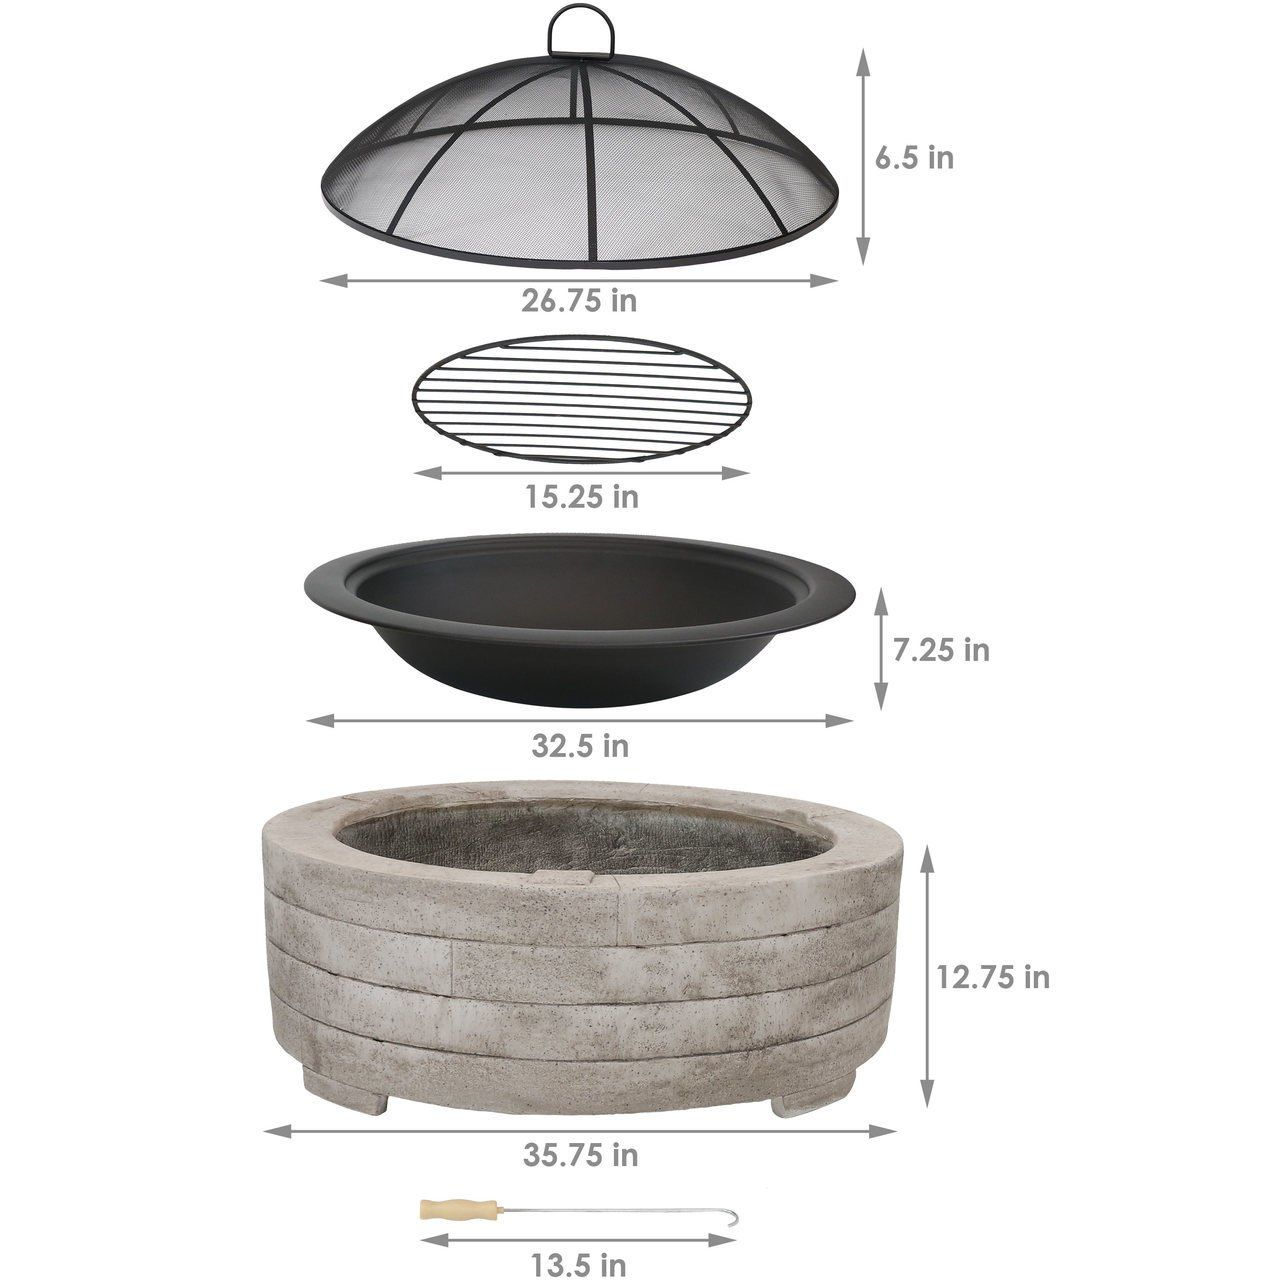 Sunnydaze Large Faux Stone Wood Burning Fire Pit Ring With Steel Fire Bowl And Spark Screen 35 Inch Diameter Wood Burning Fires Wood Burning Fire Pit Fire Pit Ring